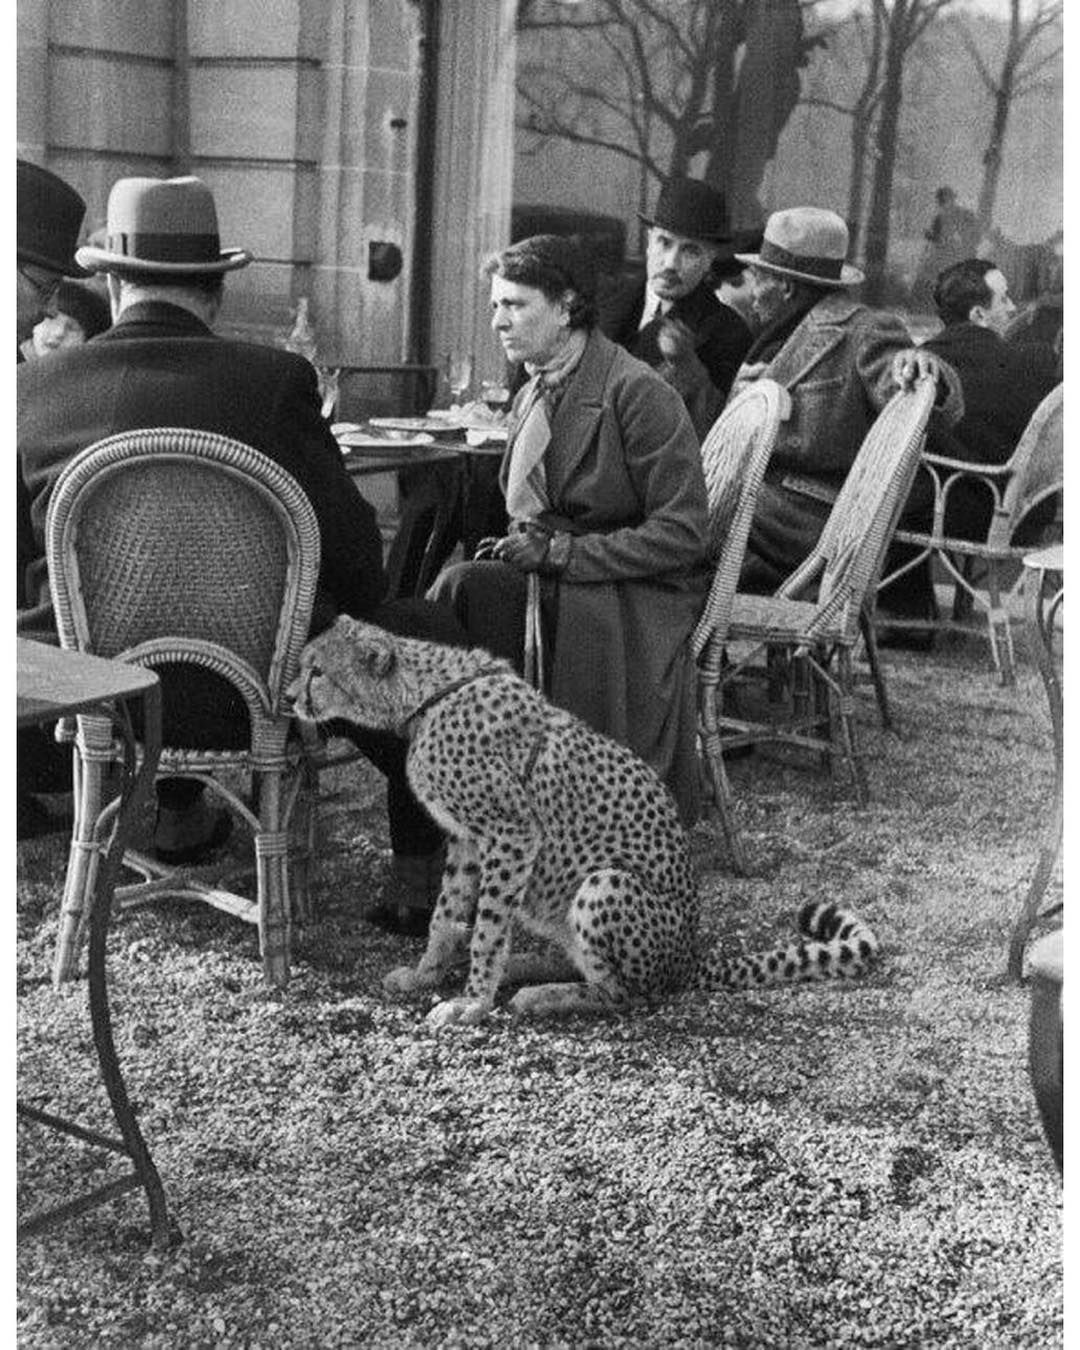 C 1936 A Woman Sitting With Her Pet Cheetah At A Cafe In Paris